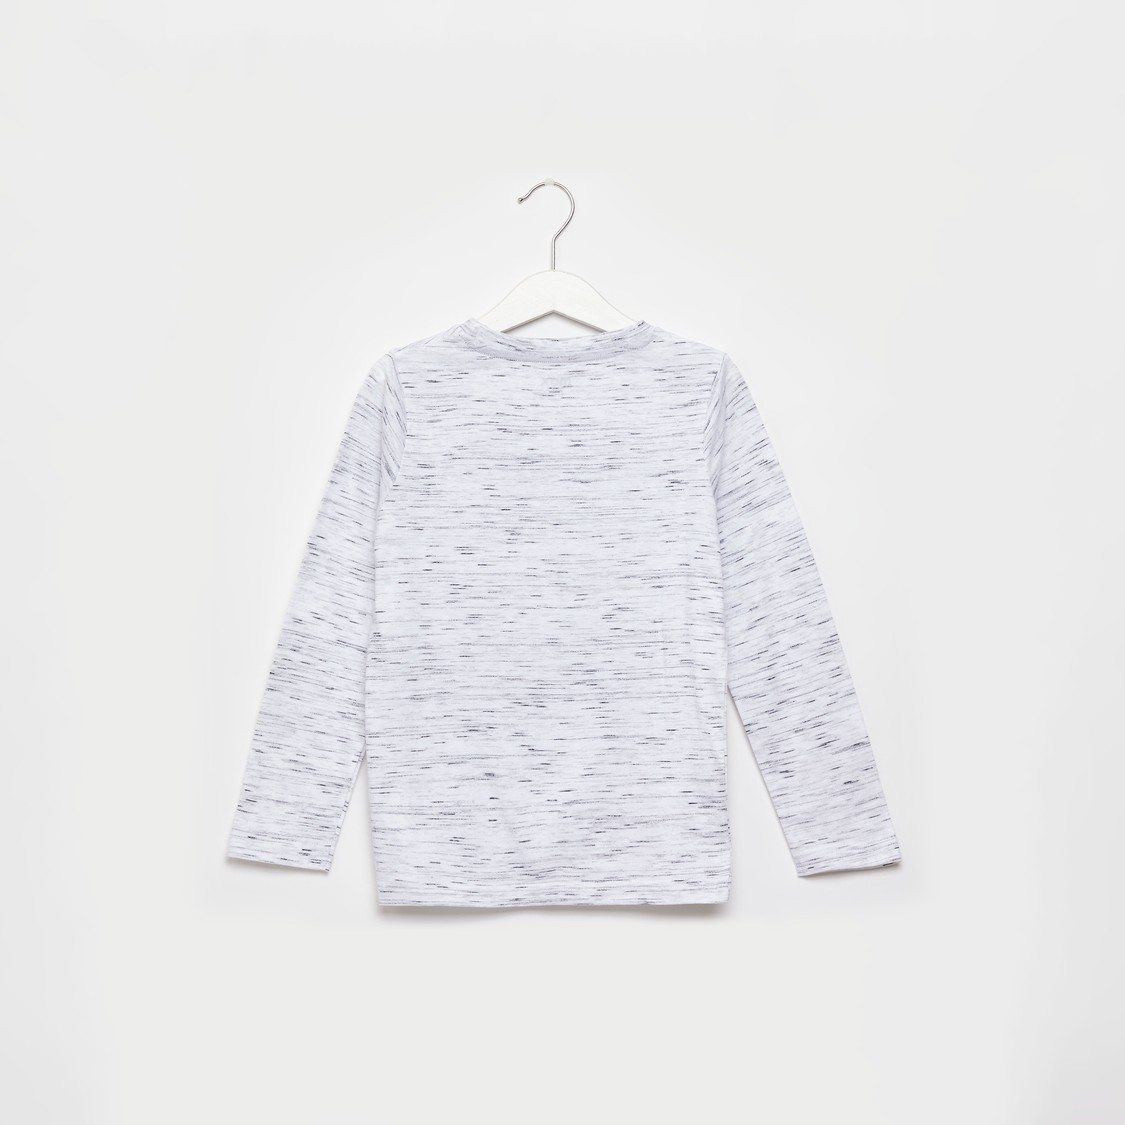 Injected Graphic Print T-shirt with Round Neck and Long Sleeves